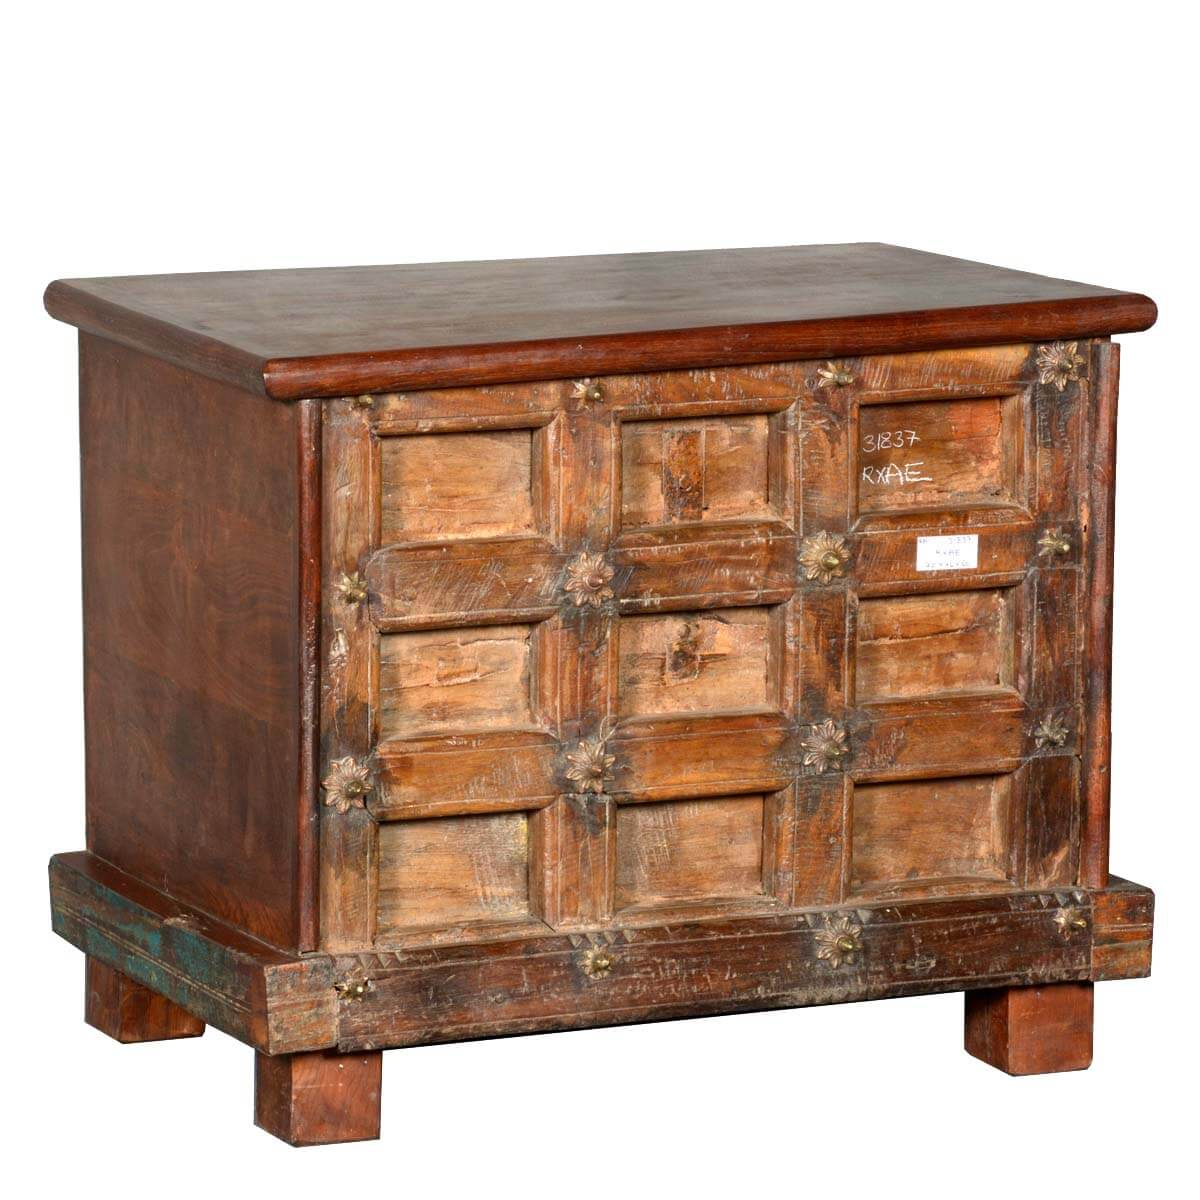 Beaufort Rustic Reclaimed Wood Gothic Mini Storage Trunk Chest